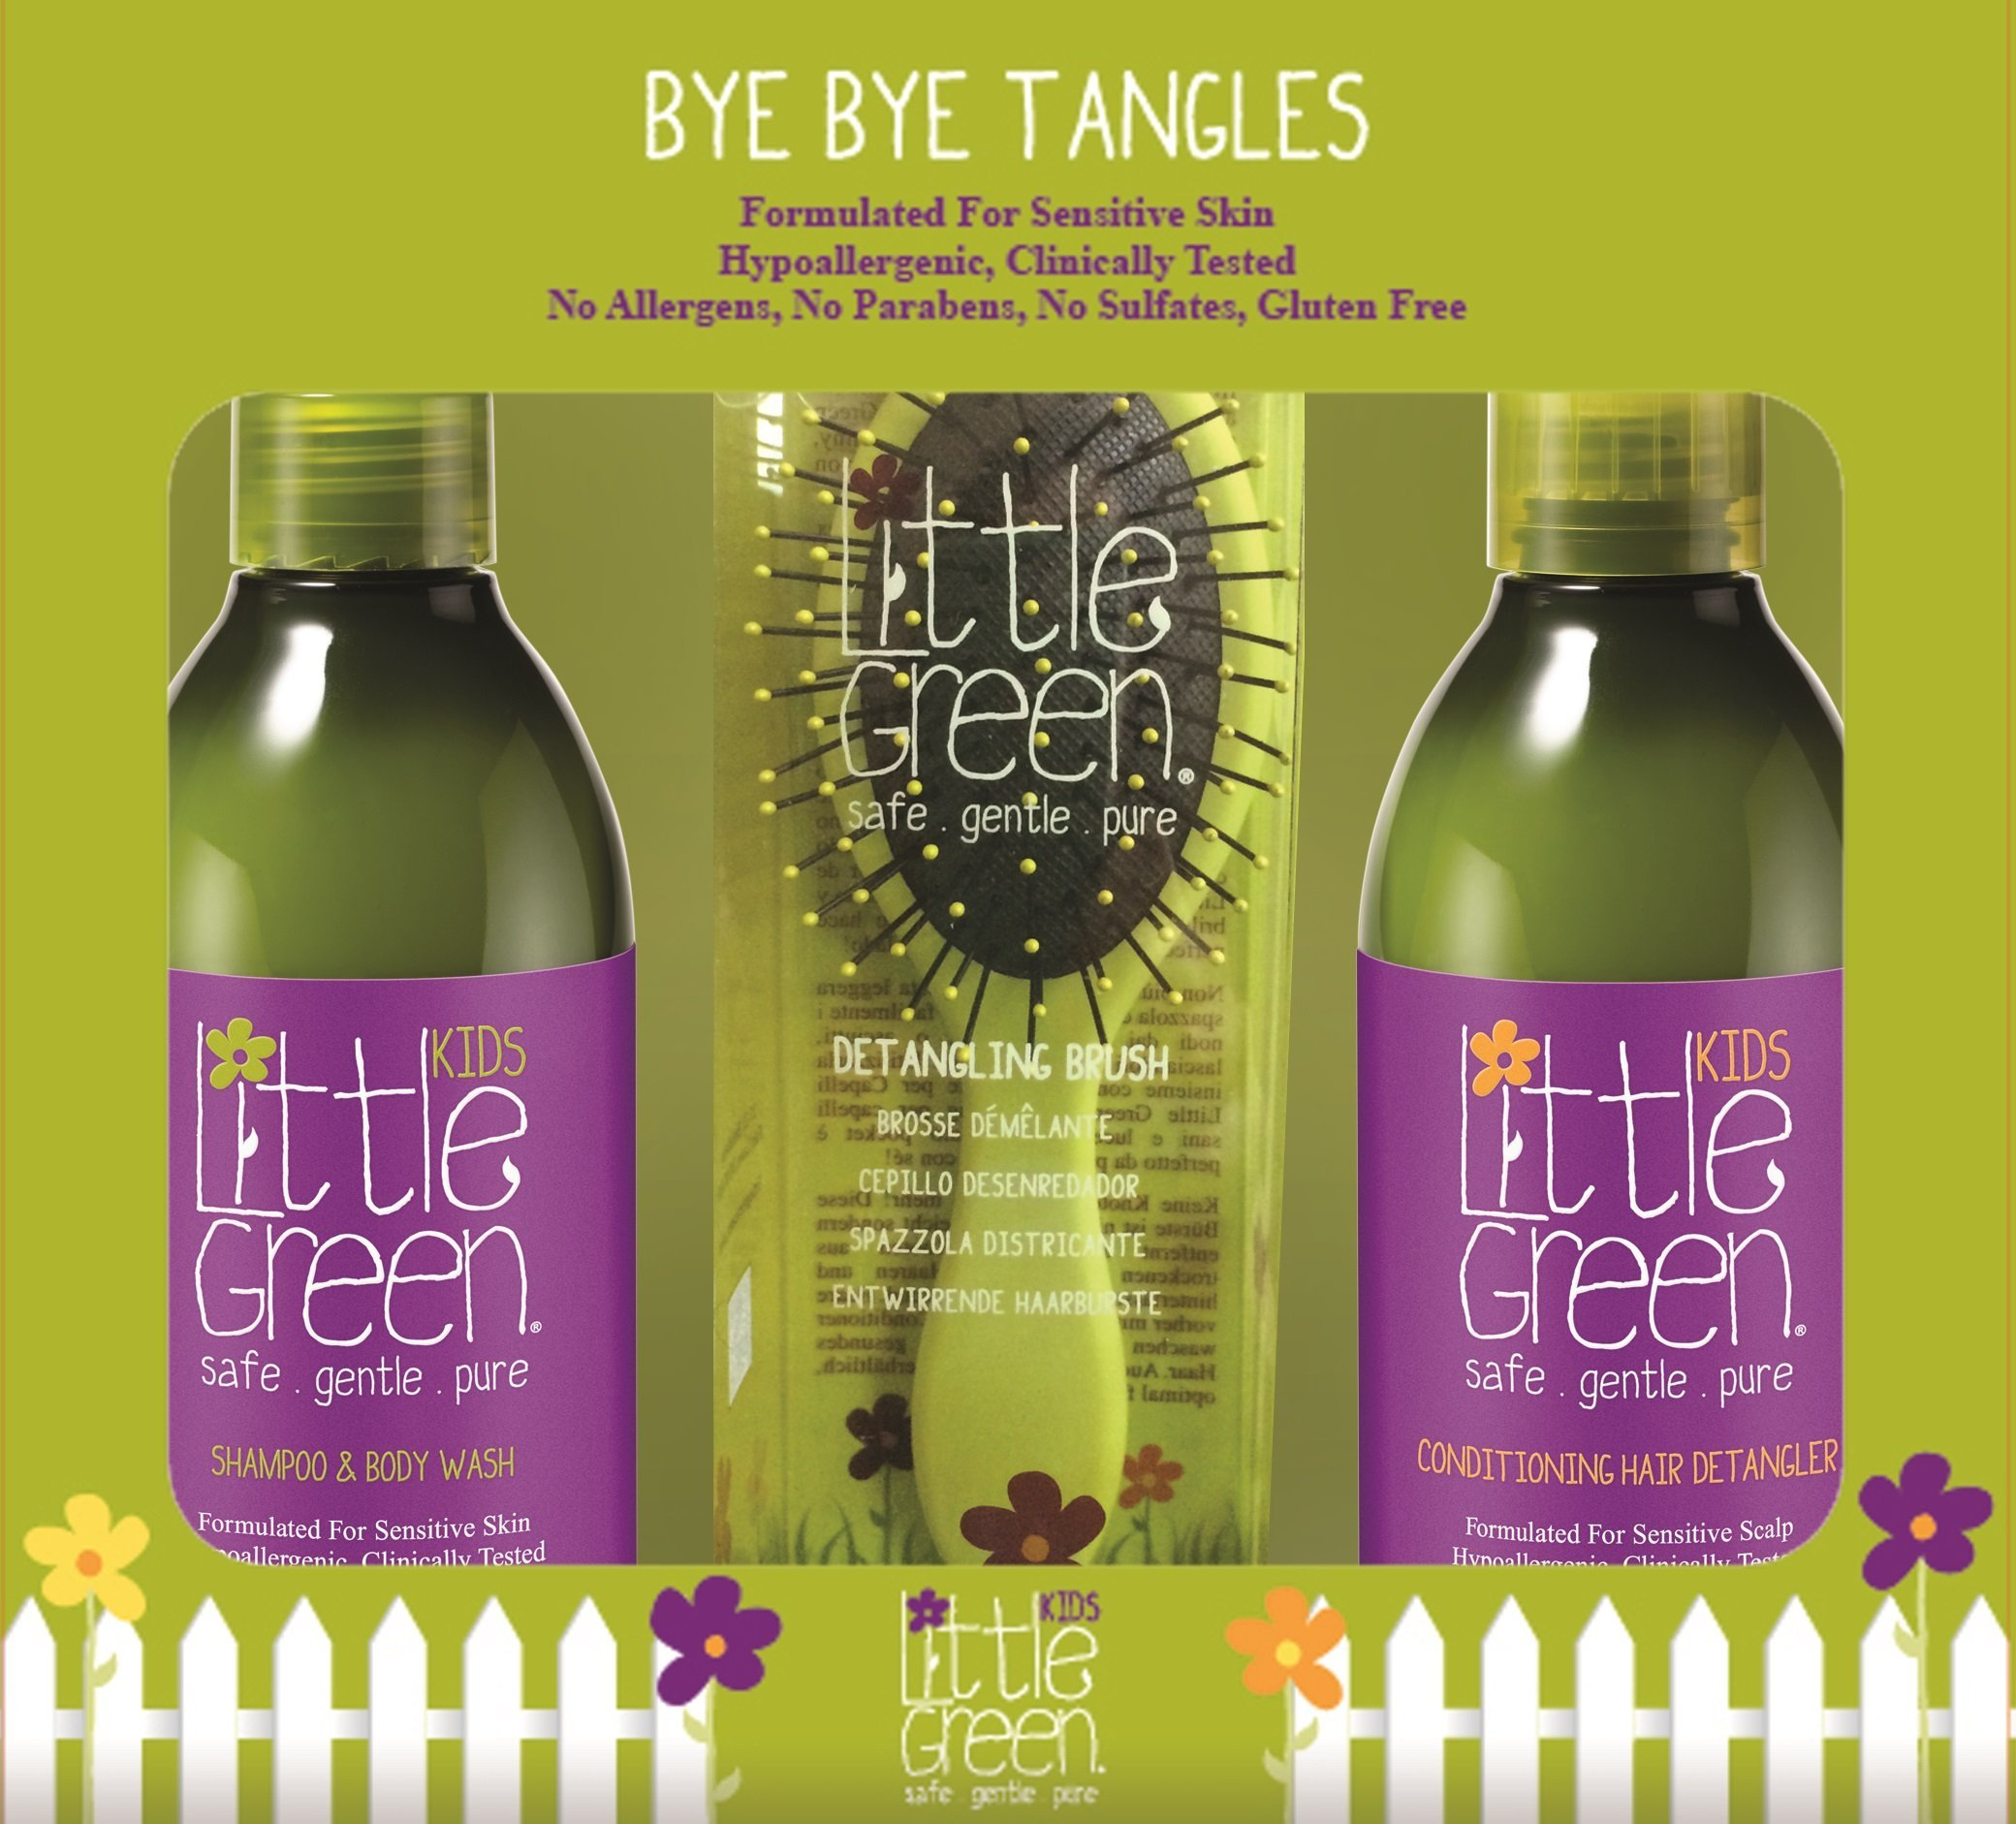 Little Green Detangling Set - Shampoo & Body Wash Conditioning Hair Detangler and Nourishing Body Lotion - Tear-Free Shampoo - Spray Detangler - Non-Toxic & Hypoallergenic - Perfect for Sensitive Skin by Little Green